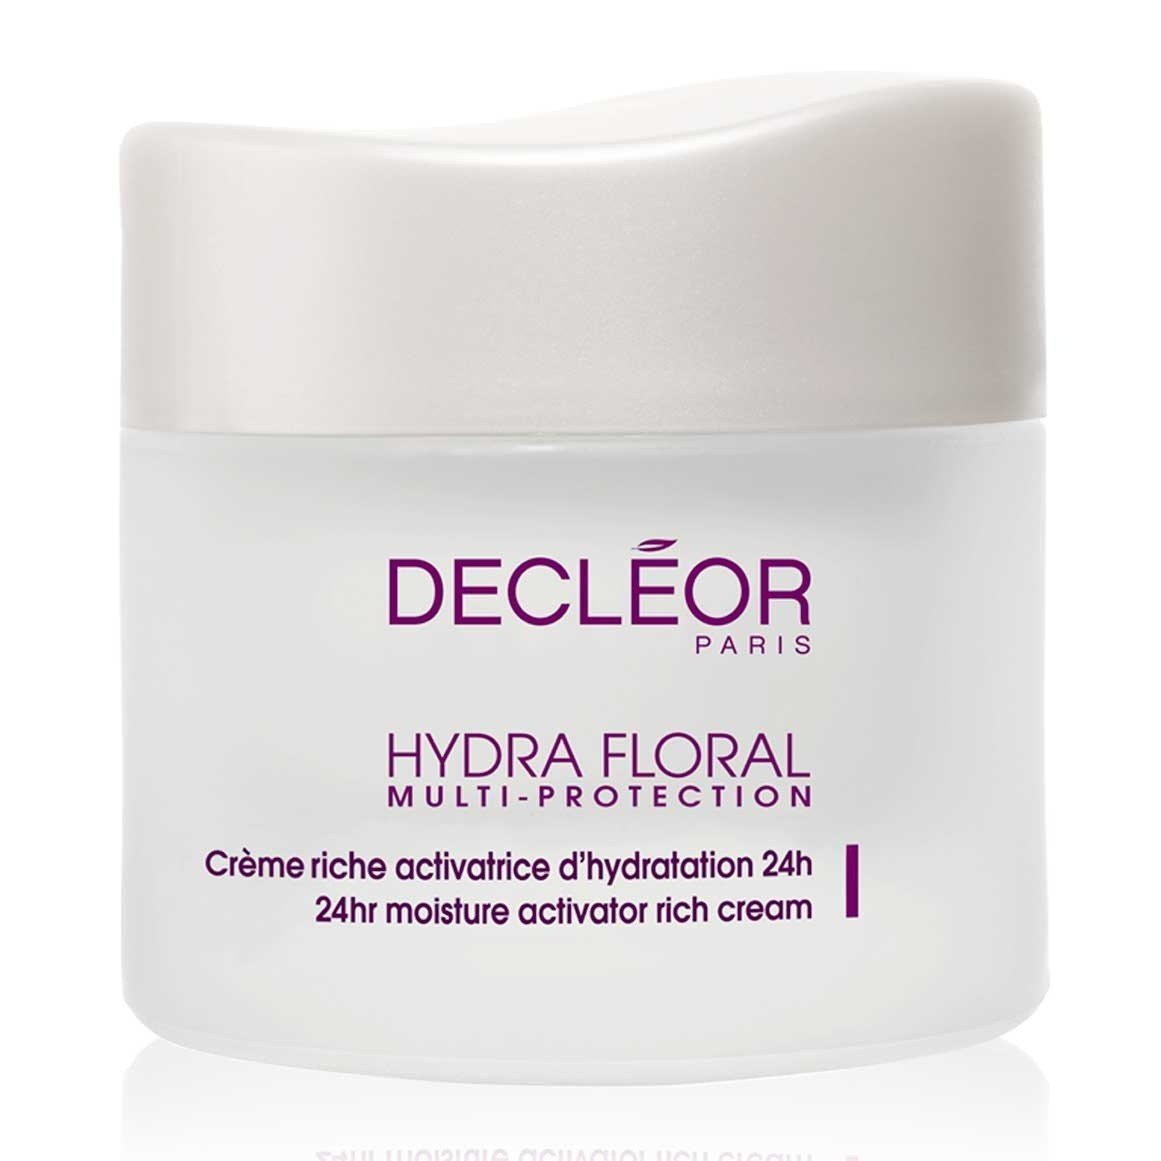 Decleor Hydra Floral 24hr Hydrating Rich Cream for Unisex, 1.7 Ounces U-SC-3170 33153700100